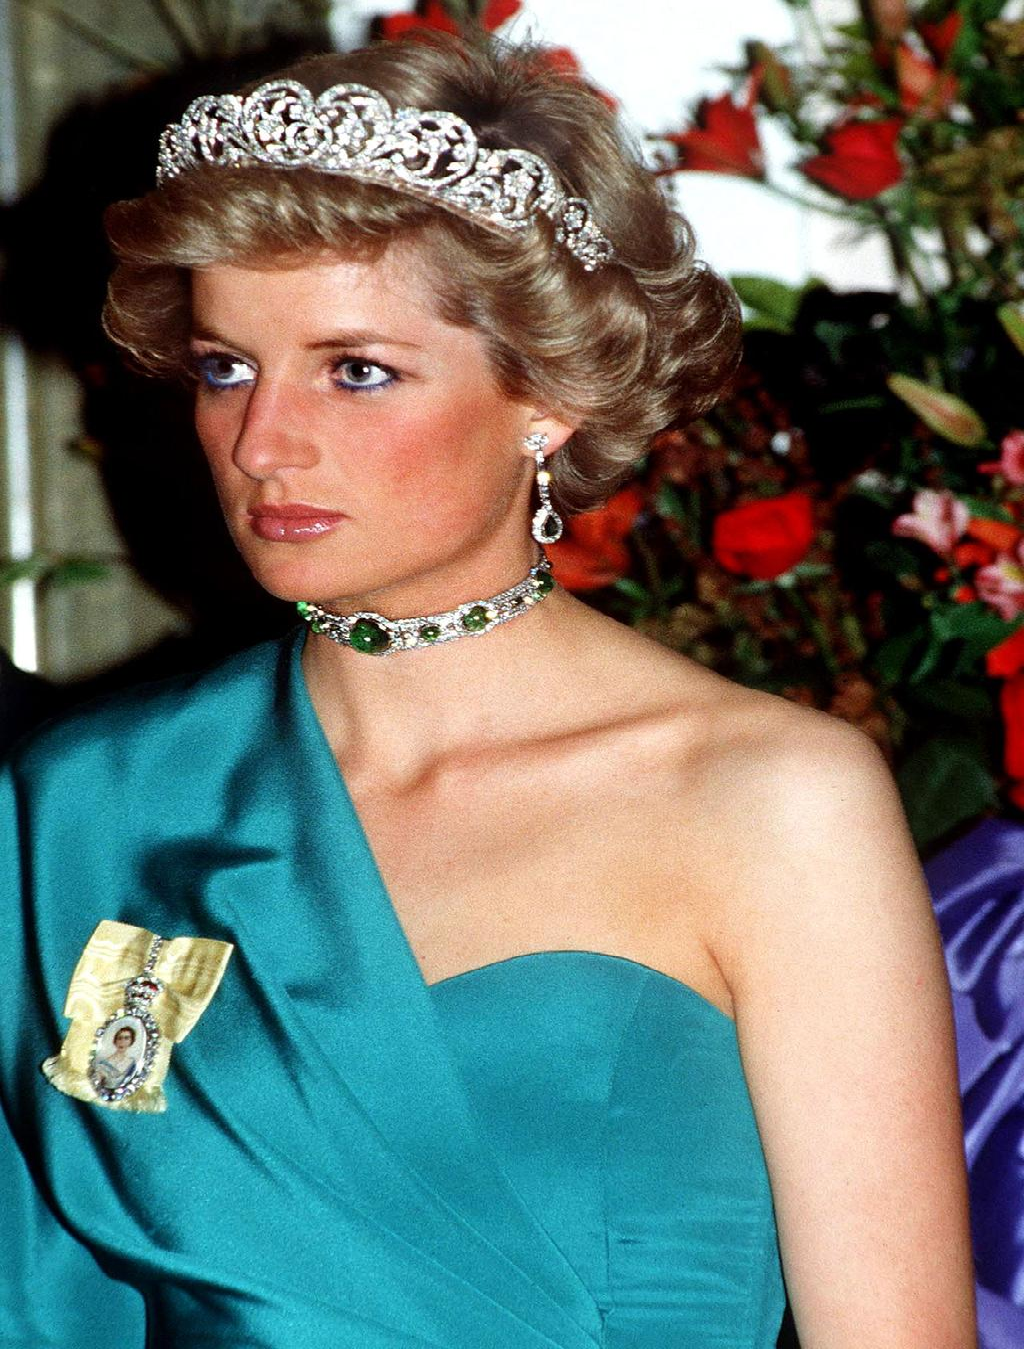 Royal bling Princess Diana's Emerald and Diamond Choker Necklace and The Spencer Family Tiara